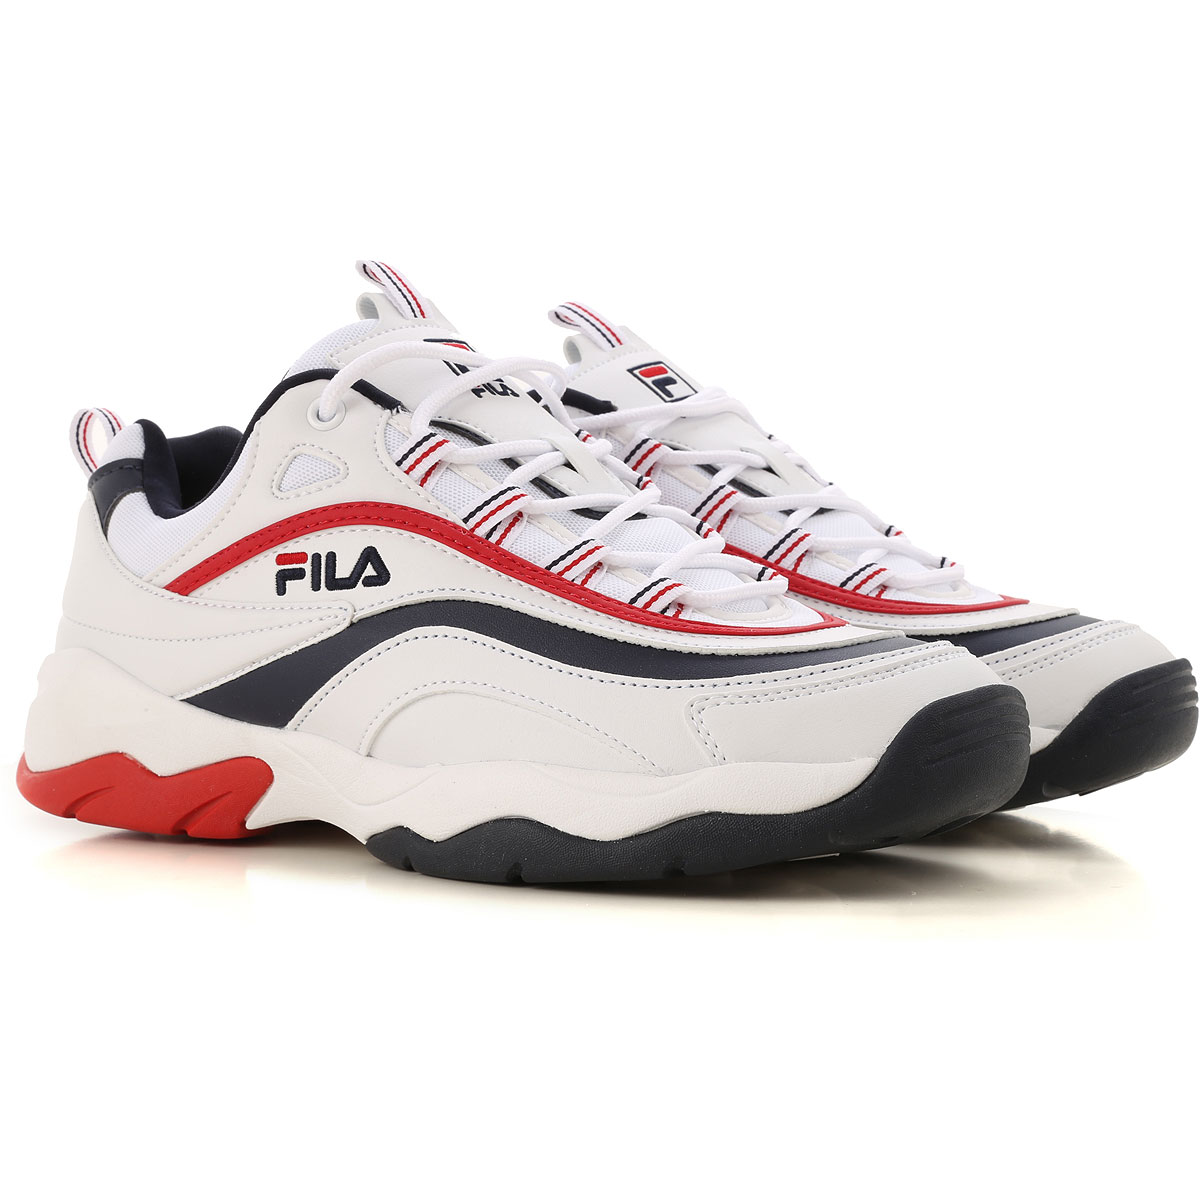 Mens Shoes Fila , Style code: 1010578 01m